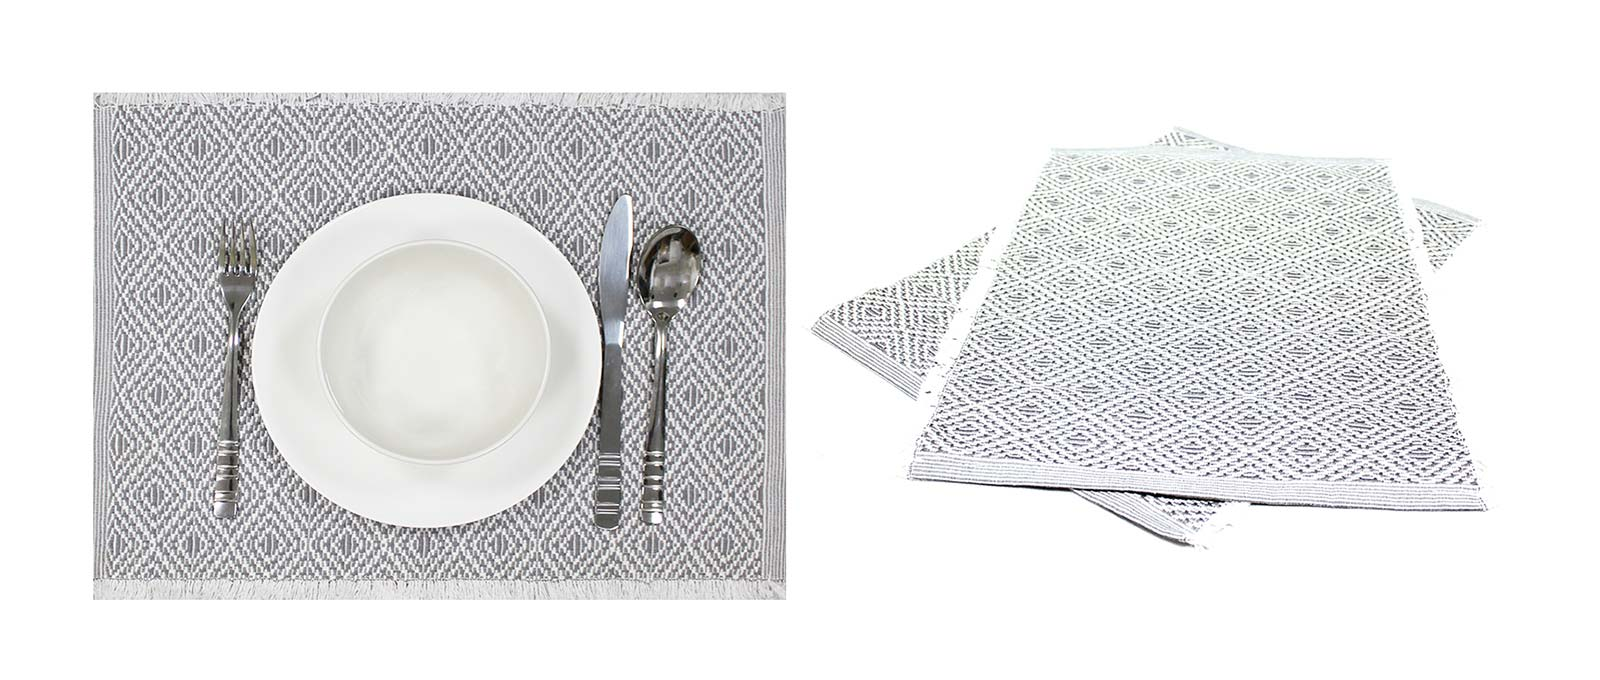 Our contemporary table mats range